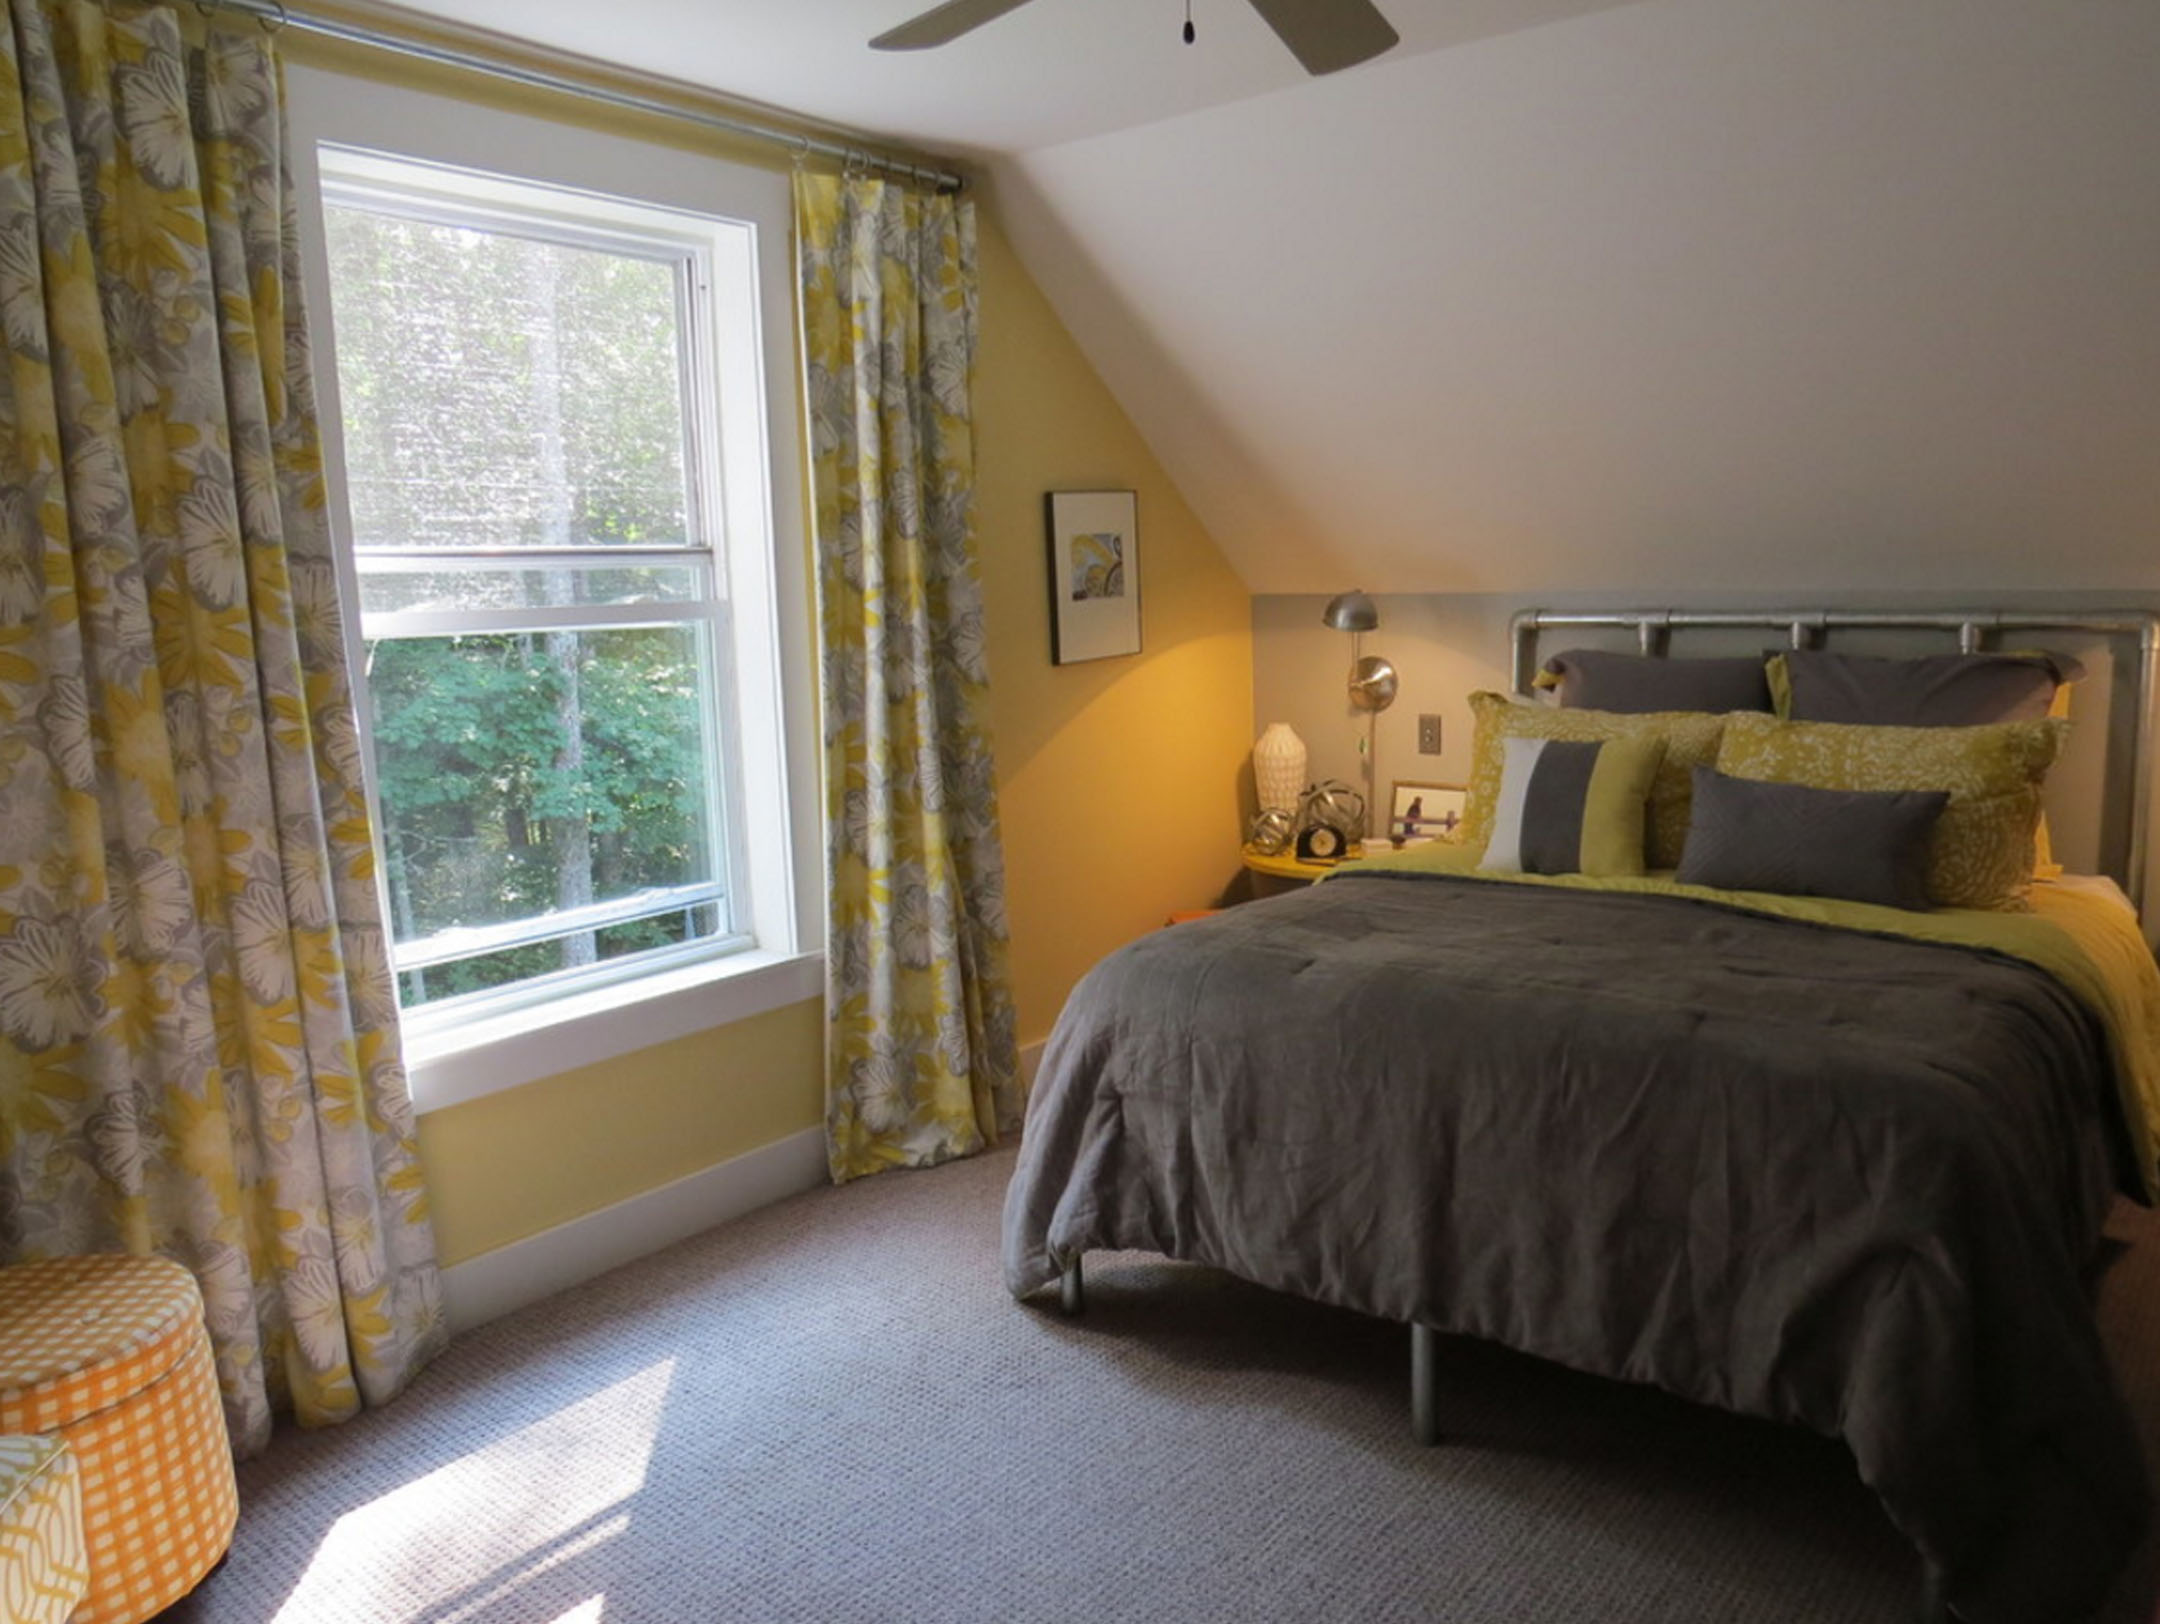 Master Bedroom Renovation: DIY Kee Klamp Bed Photo Gallery